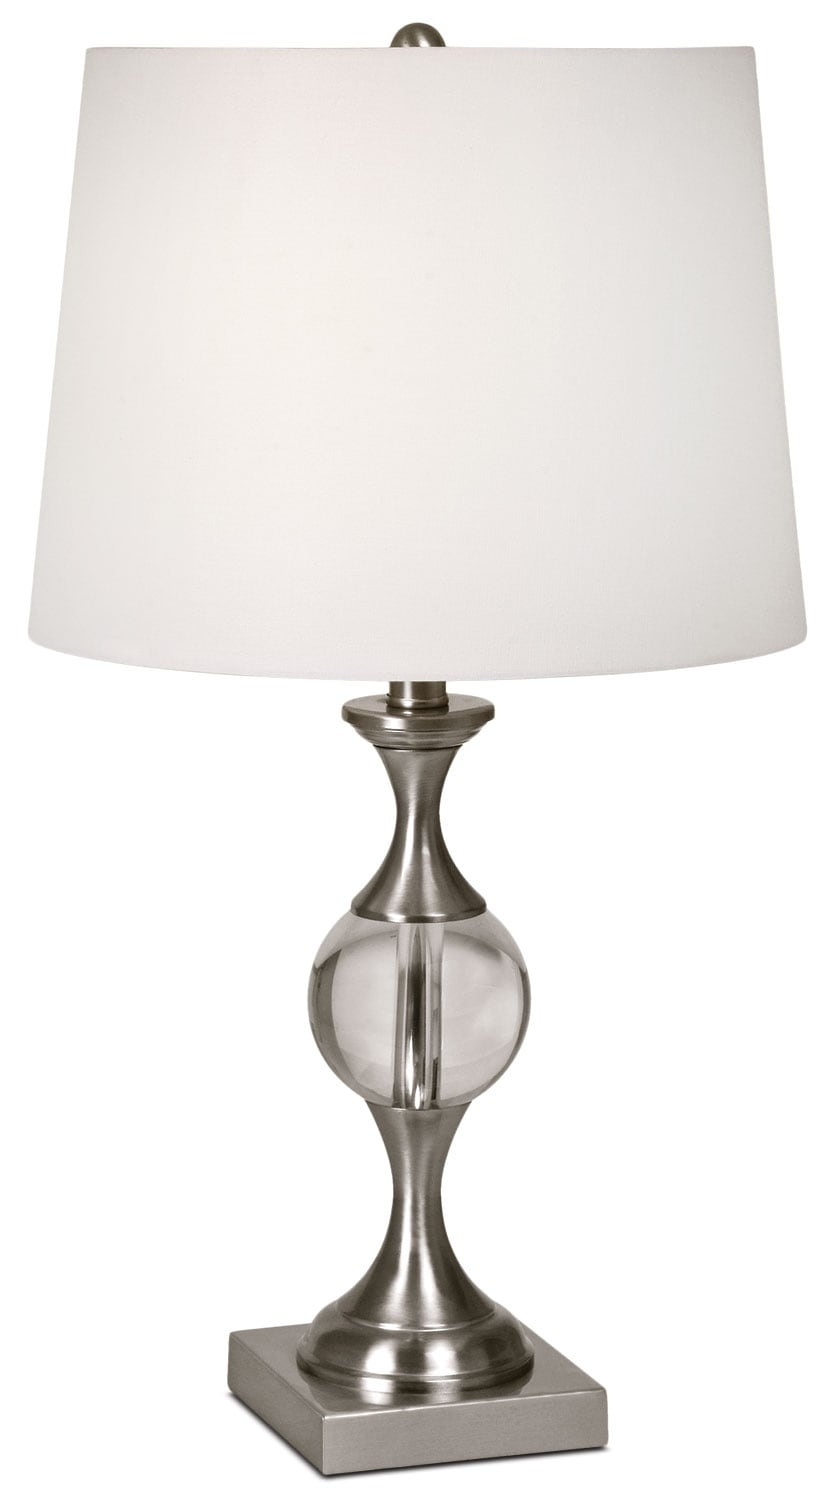 "Accent and Occasional Furniture - Amari 25"" Table Lamp - Nickel"